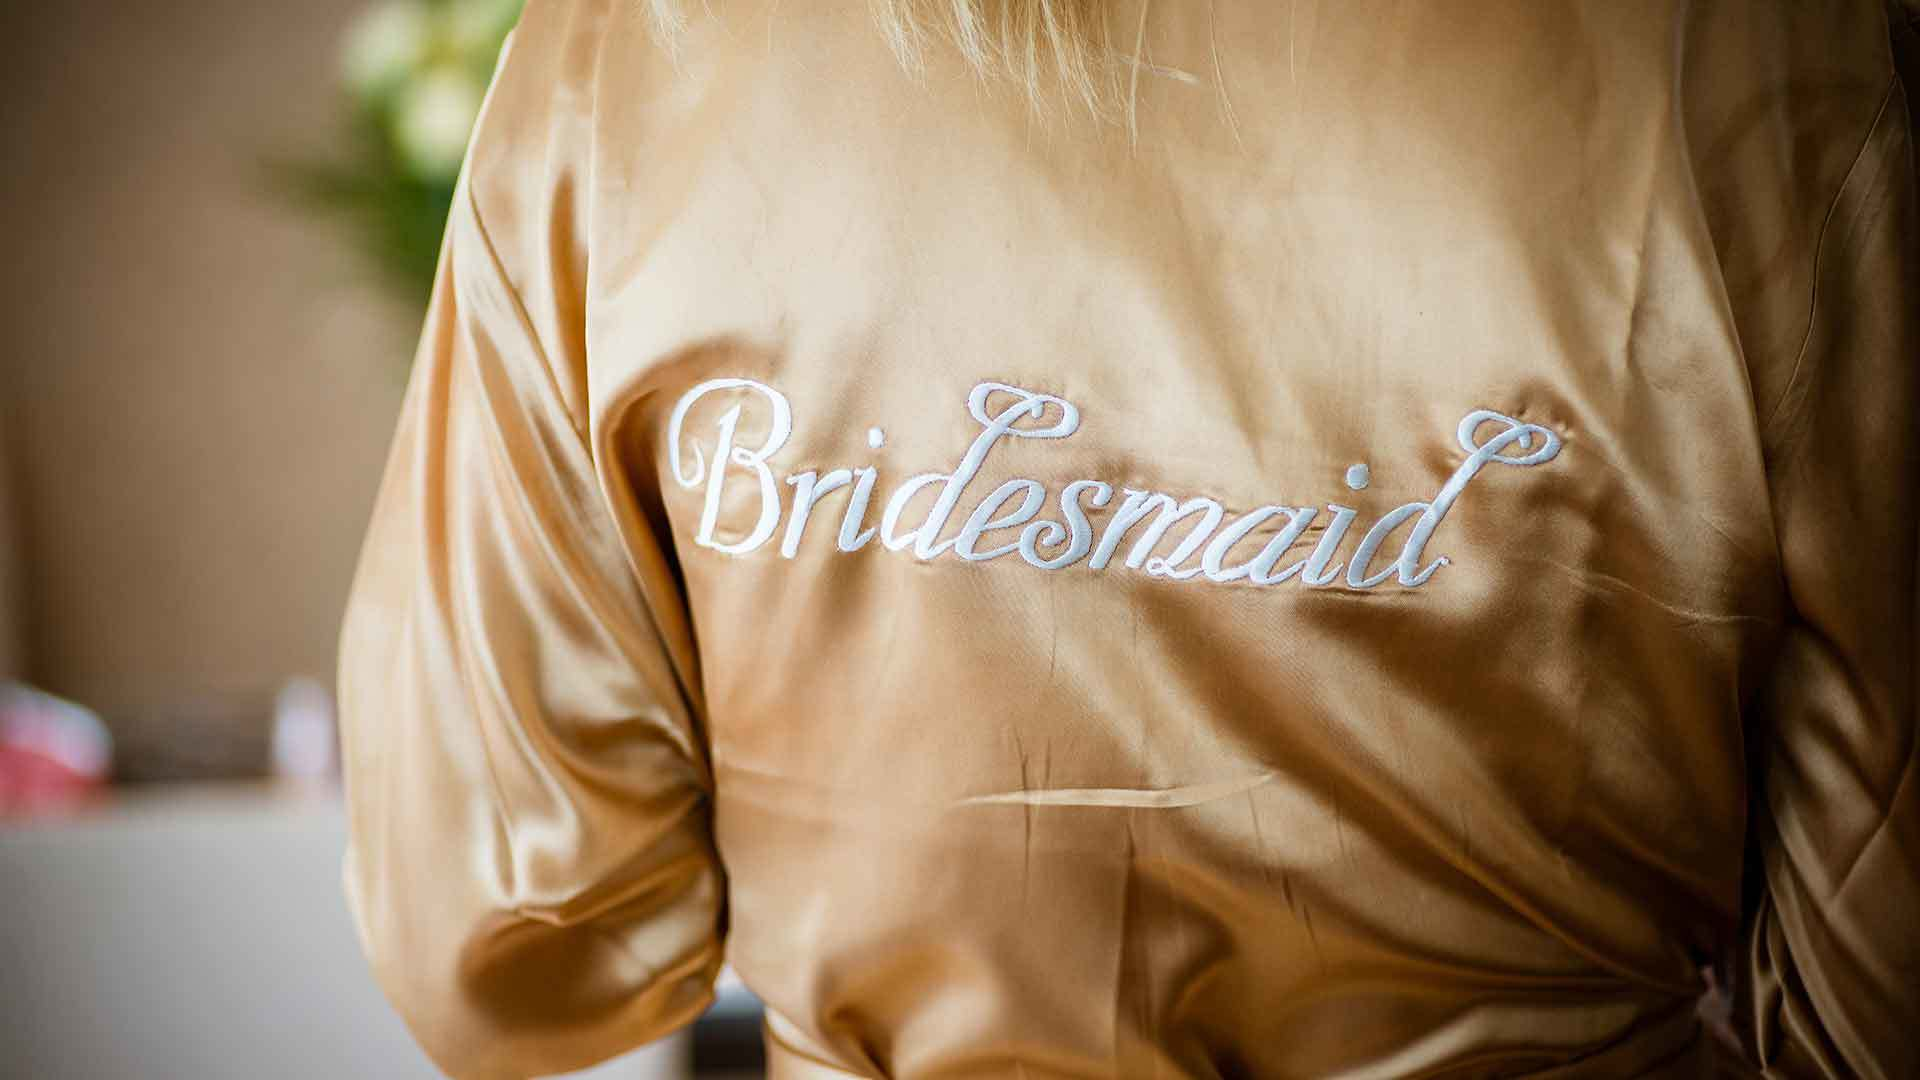 Bridesmaid - Getting Ready